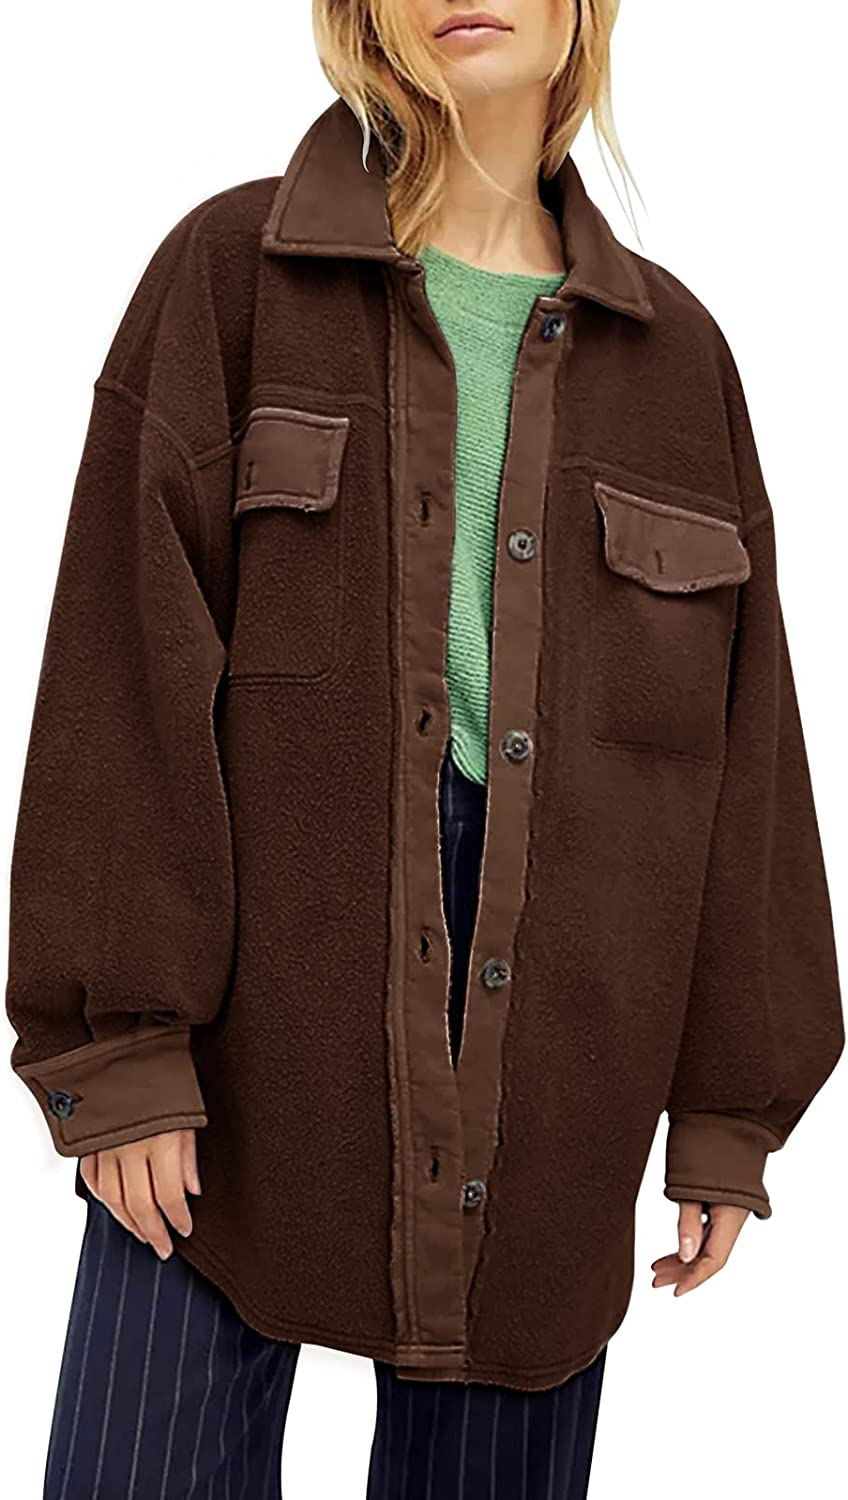 Womens Oversized Long Sleeve Button Down Jacket Fall Winter Soft Comfy Casual Shacked Coats with Pockets